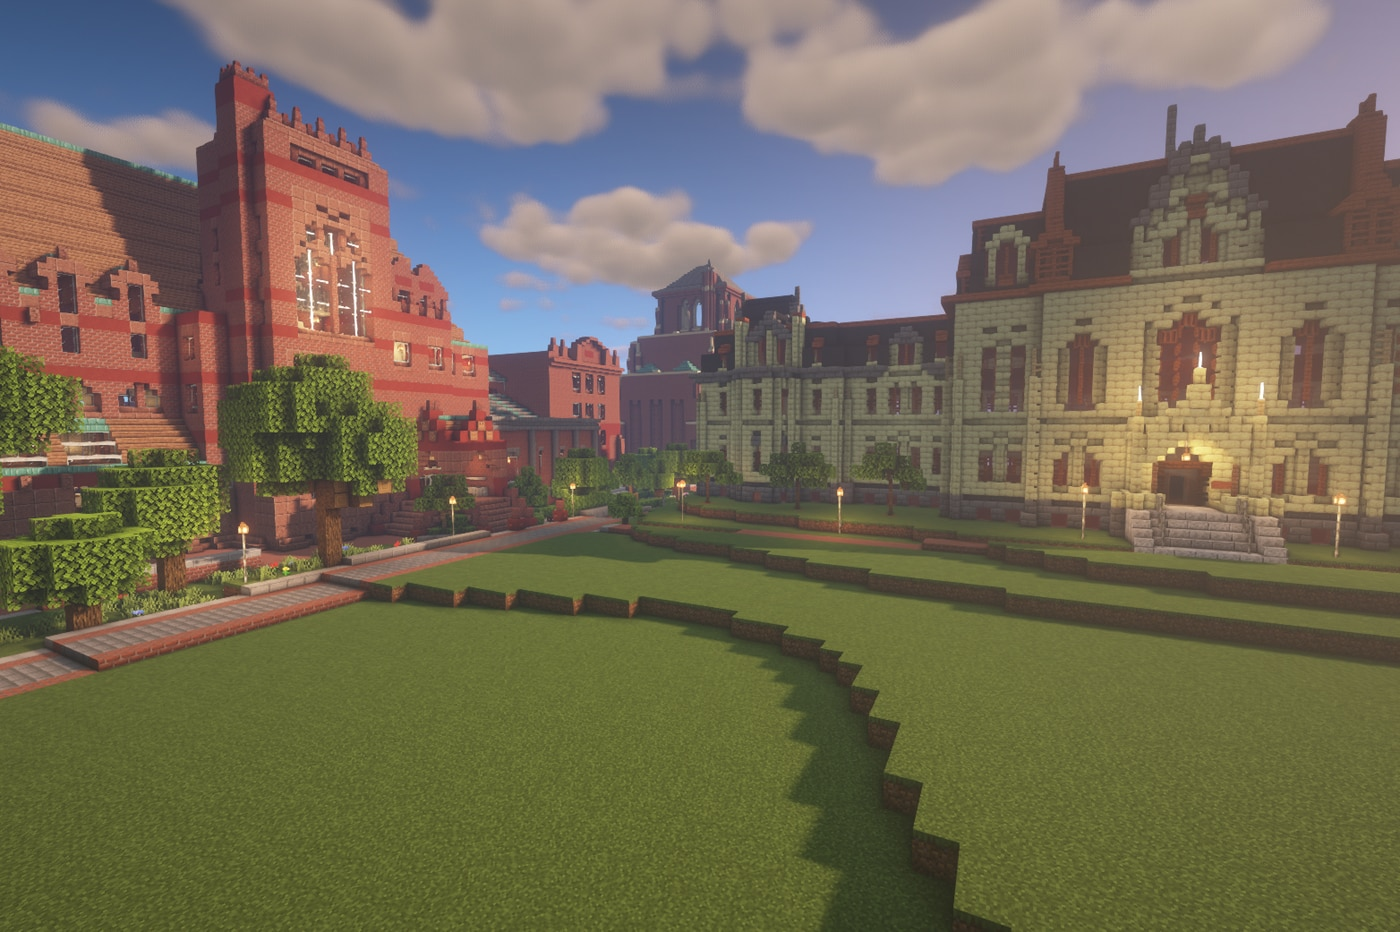 Penn students have re-created their campus on Minecraft